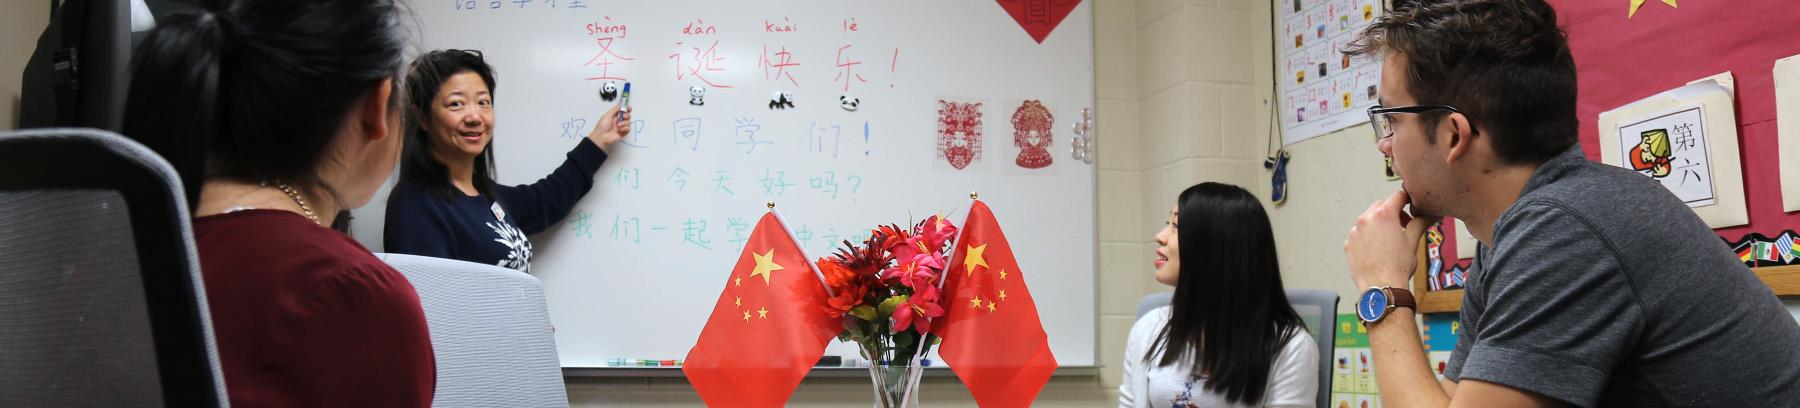 Students learning Chinese history and culture